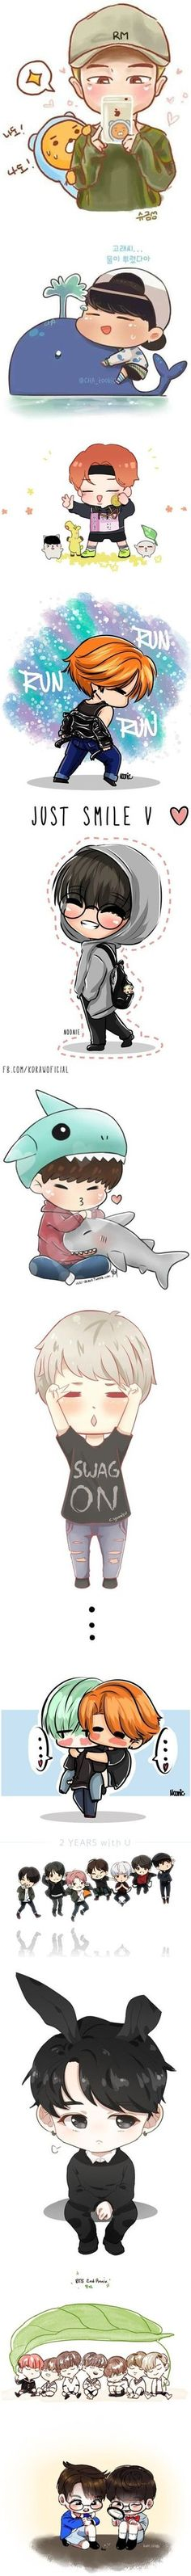 BTS Chibi by fantasy-lover- Bts E Got7, Bts And Exo, Namjoon, Taehyung, Bts Chibi, Bts Bangtan Boy, Bts Jimin, Bts Gifs, K Pop